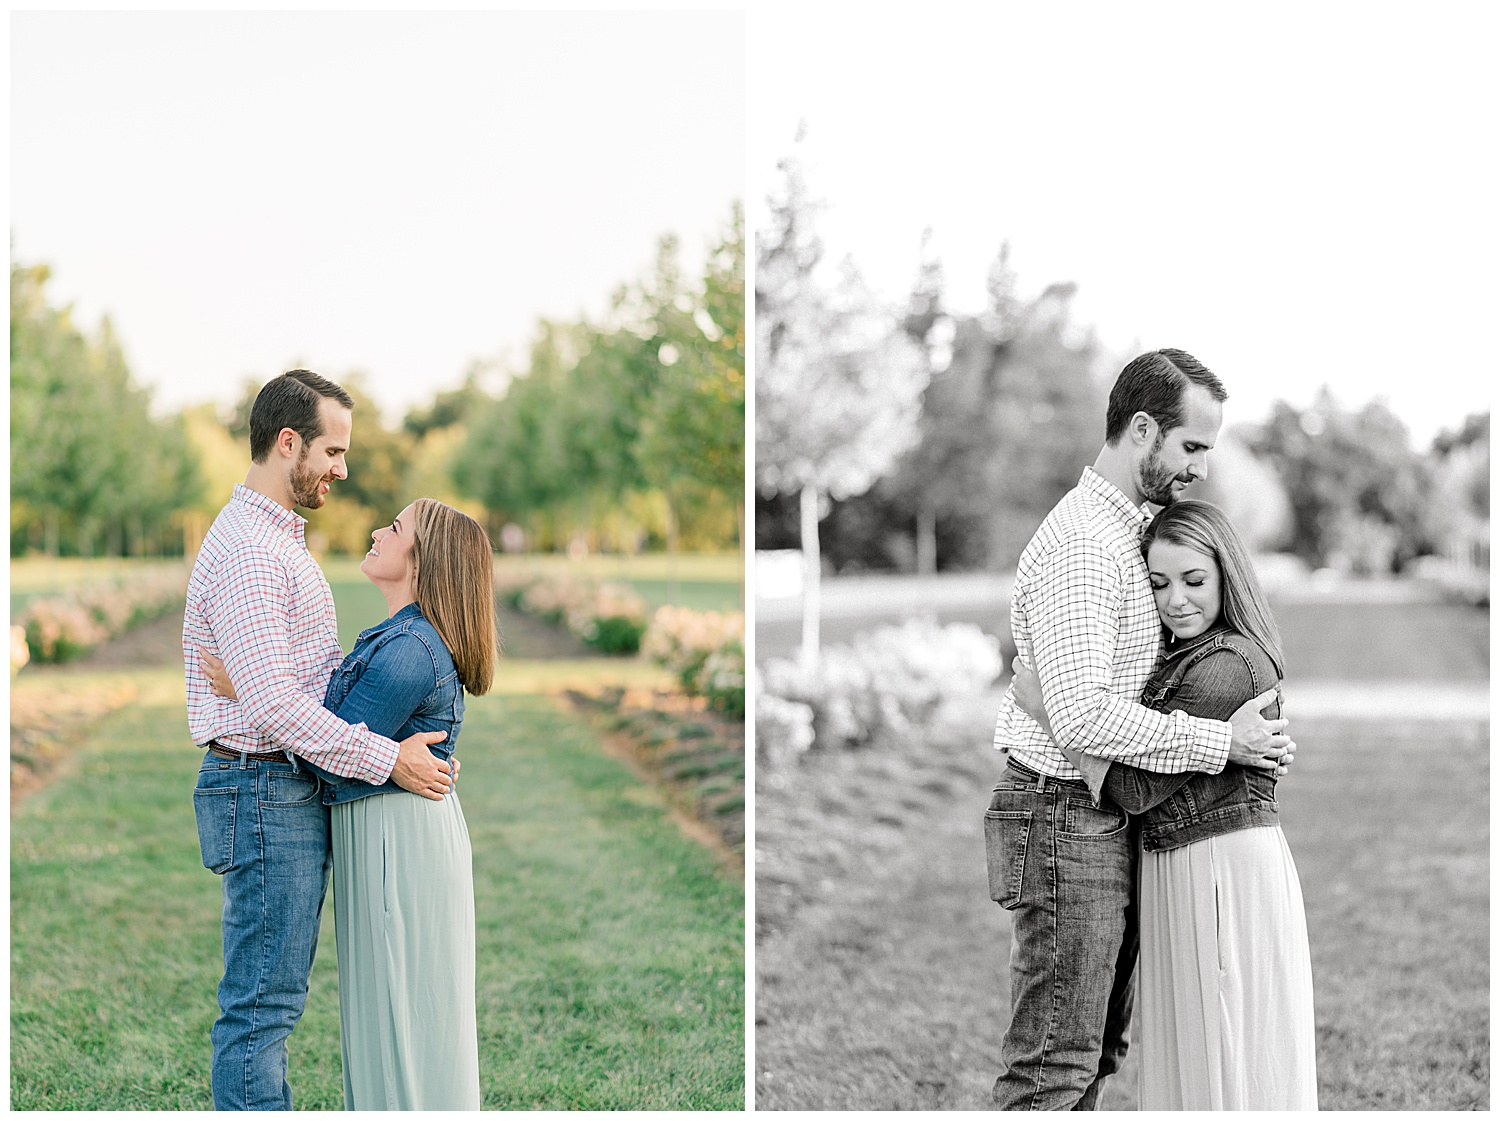 Cox_Arboretum_Anniversary_Session_Miamisburg_Ohio_Cassandra_Janina_Photography_Ohio_Wedding_Photographer_0262.jpg